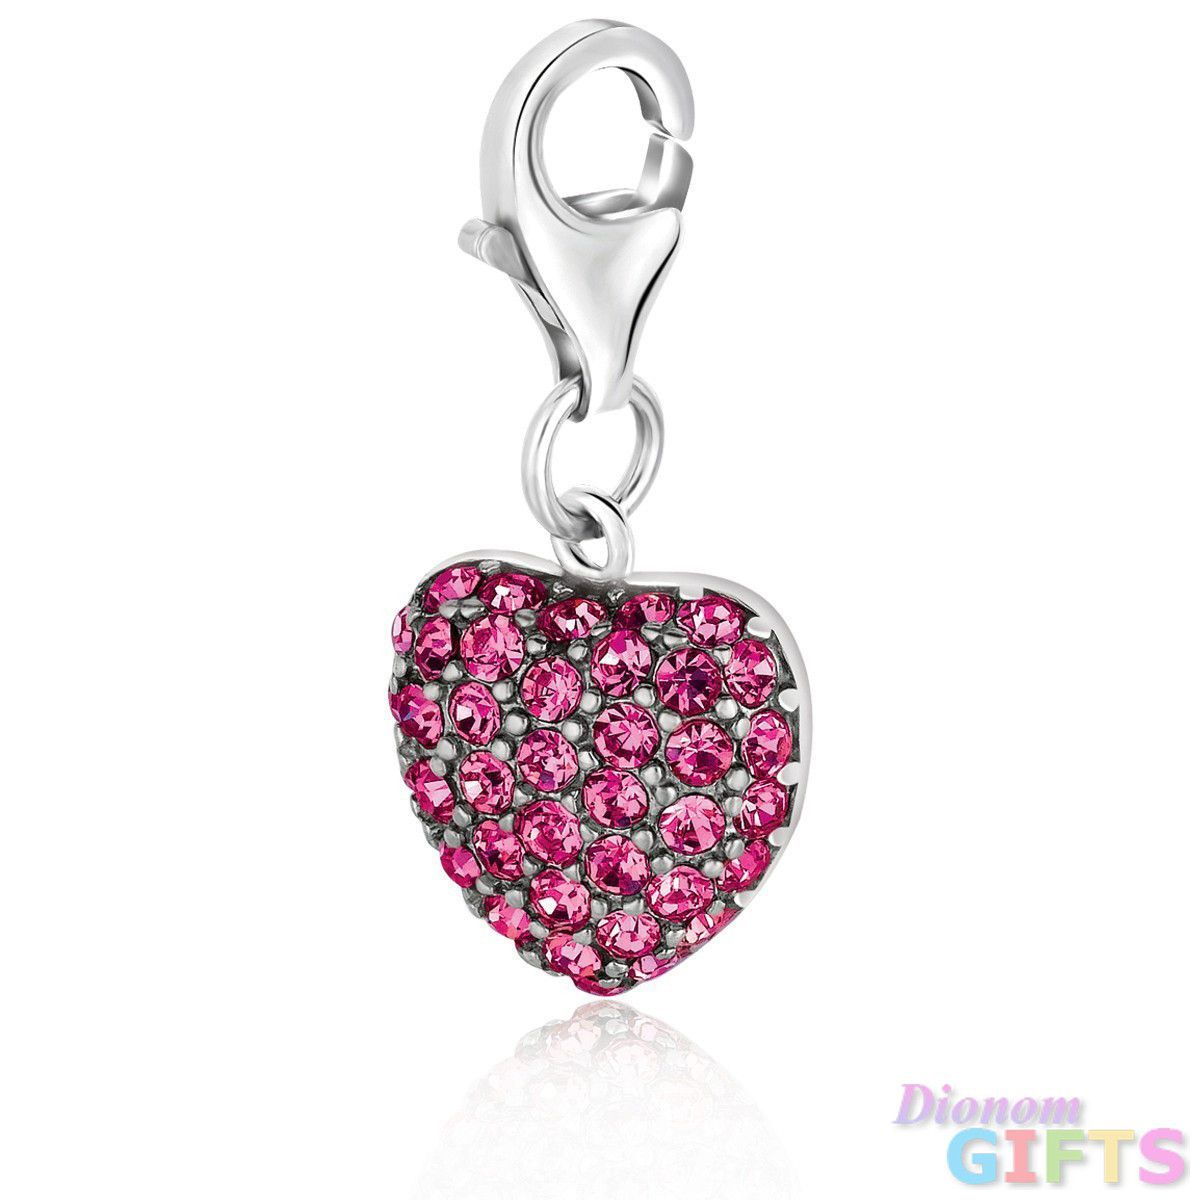 Sterling silver heart charm embellished with pink tone crystal